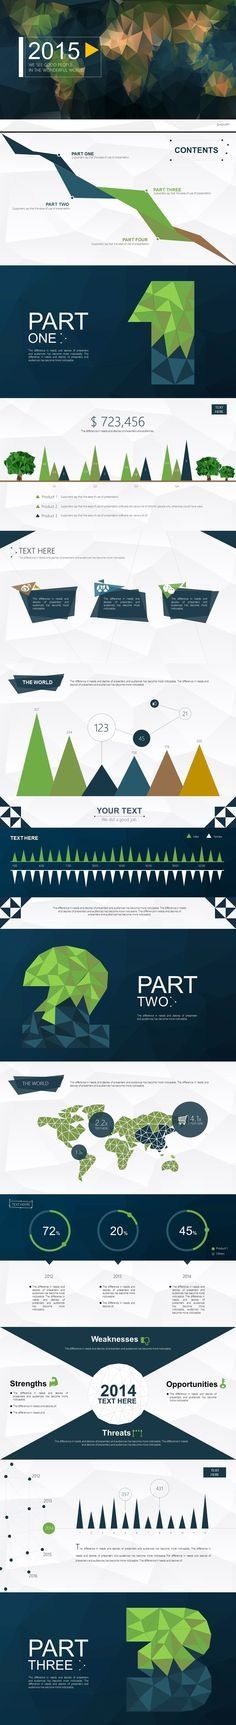 Visualisation Presentation | Low Poly Template (Forest) on Behance